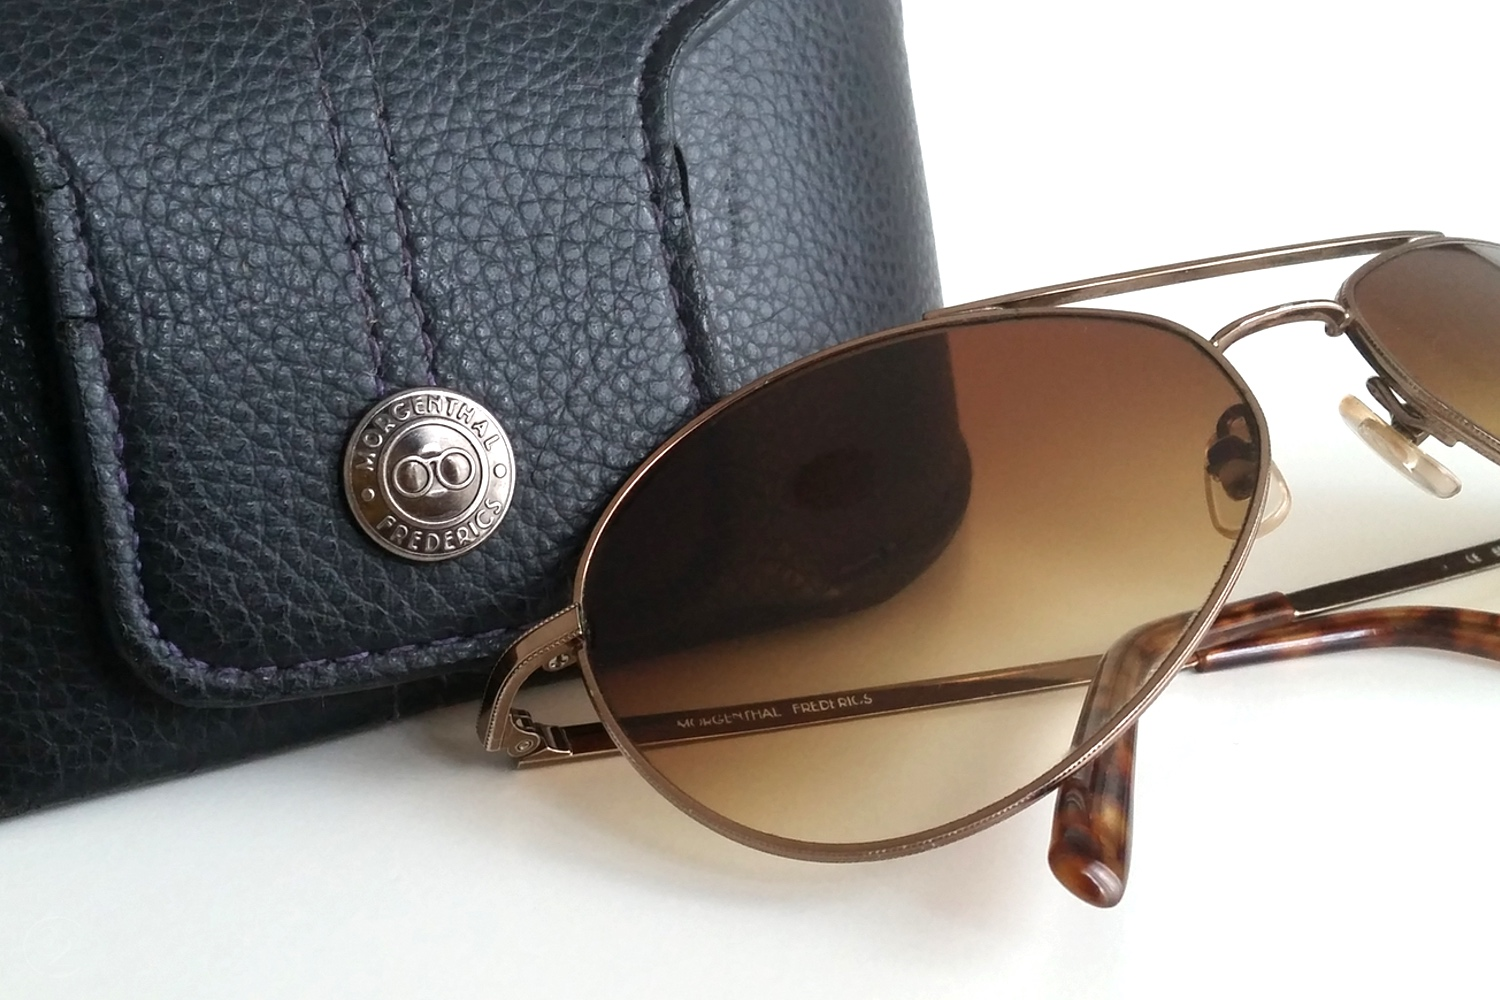 character-32-lifestyle-designer-highend-living-morgenthal-frederics-sunglasses-with-case